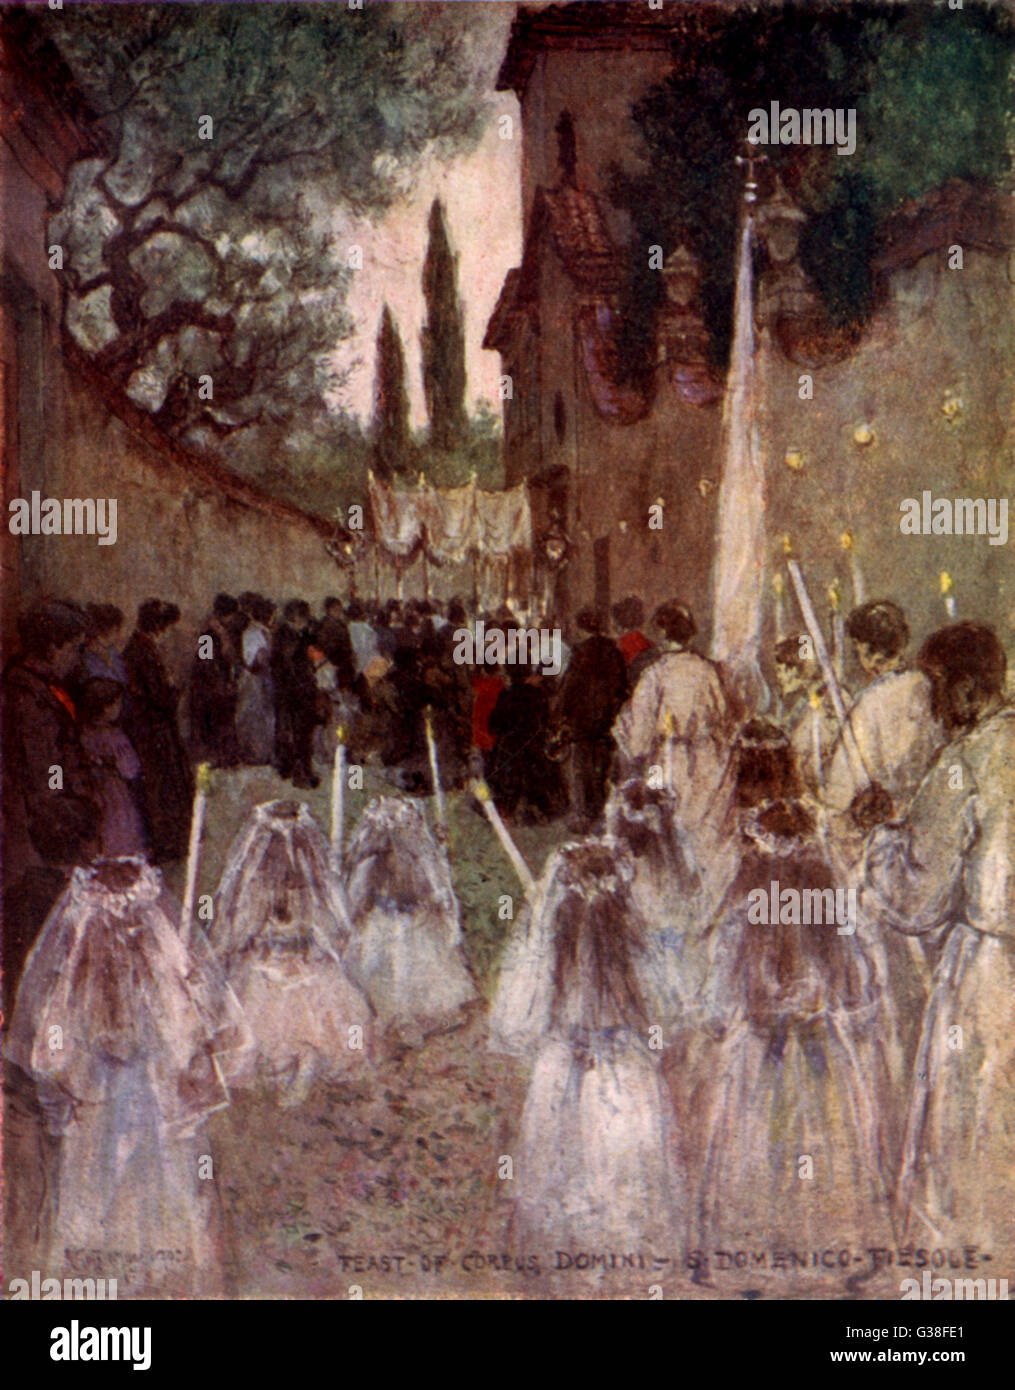 Corpus Christi procession, on  Thursday after Trinity, at  Fiesole, near Firenze (Italy)       Date: 1902 - Stock Image